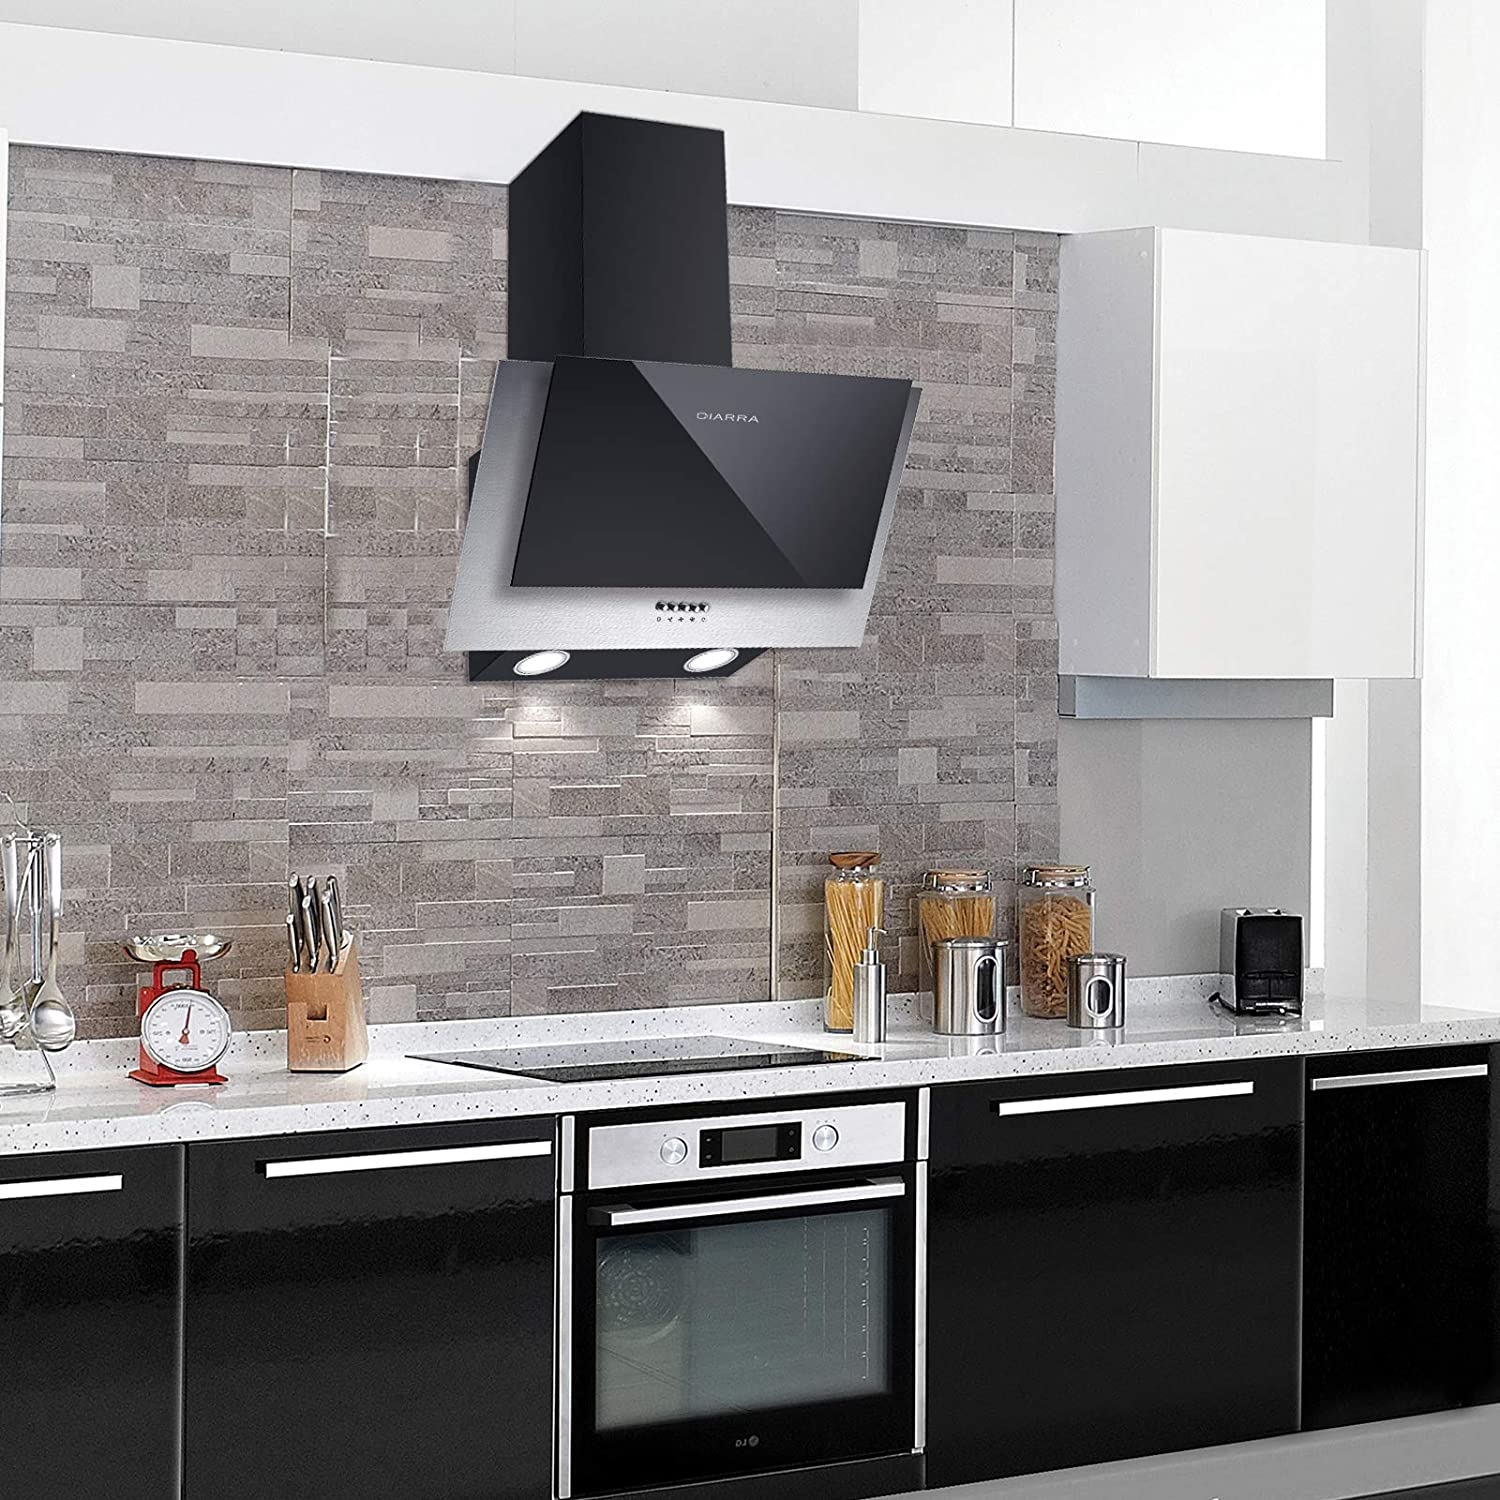 CIARRA Angled Cooker Hood 60cm 380m/³//h 3 Ventilation Speeds LED Lights /& Stainless Steel Tempered Glass Kitchen Chimney Extractor Vent Hoods Black